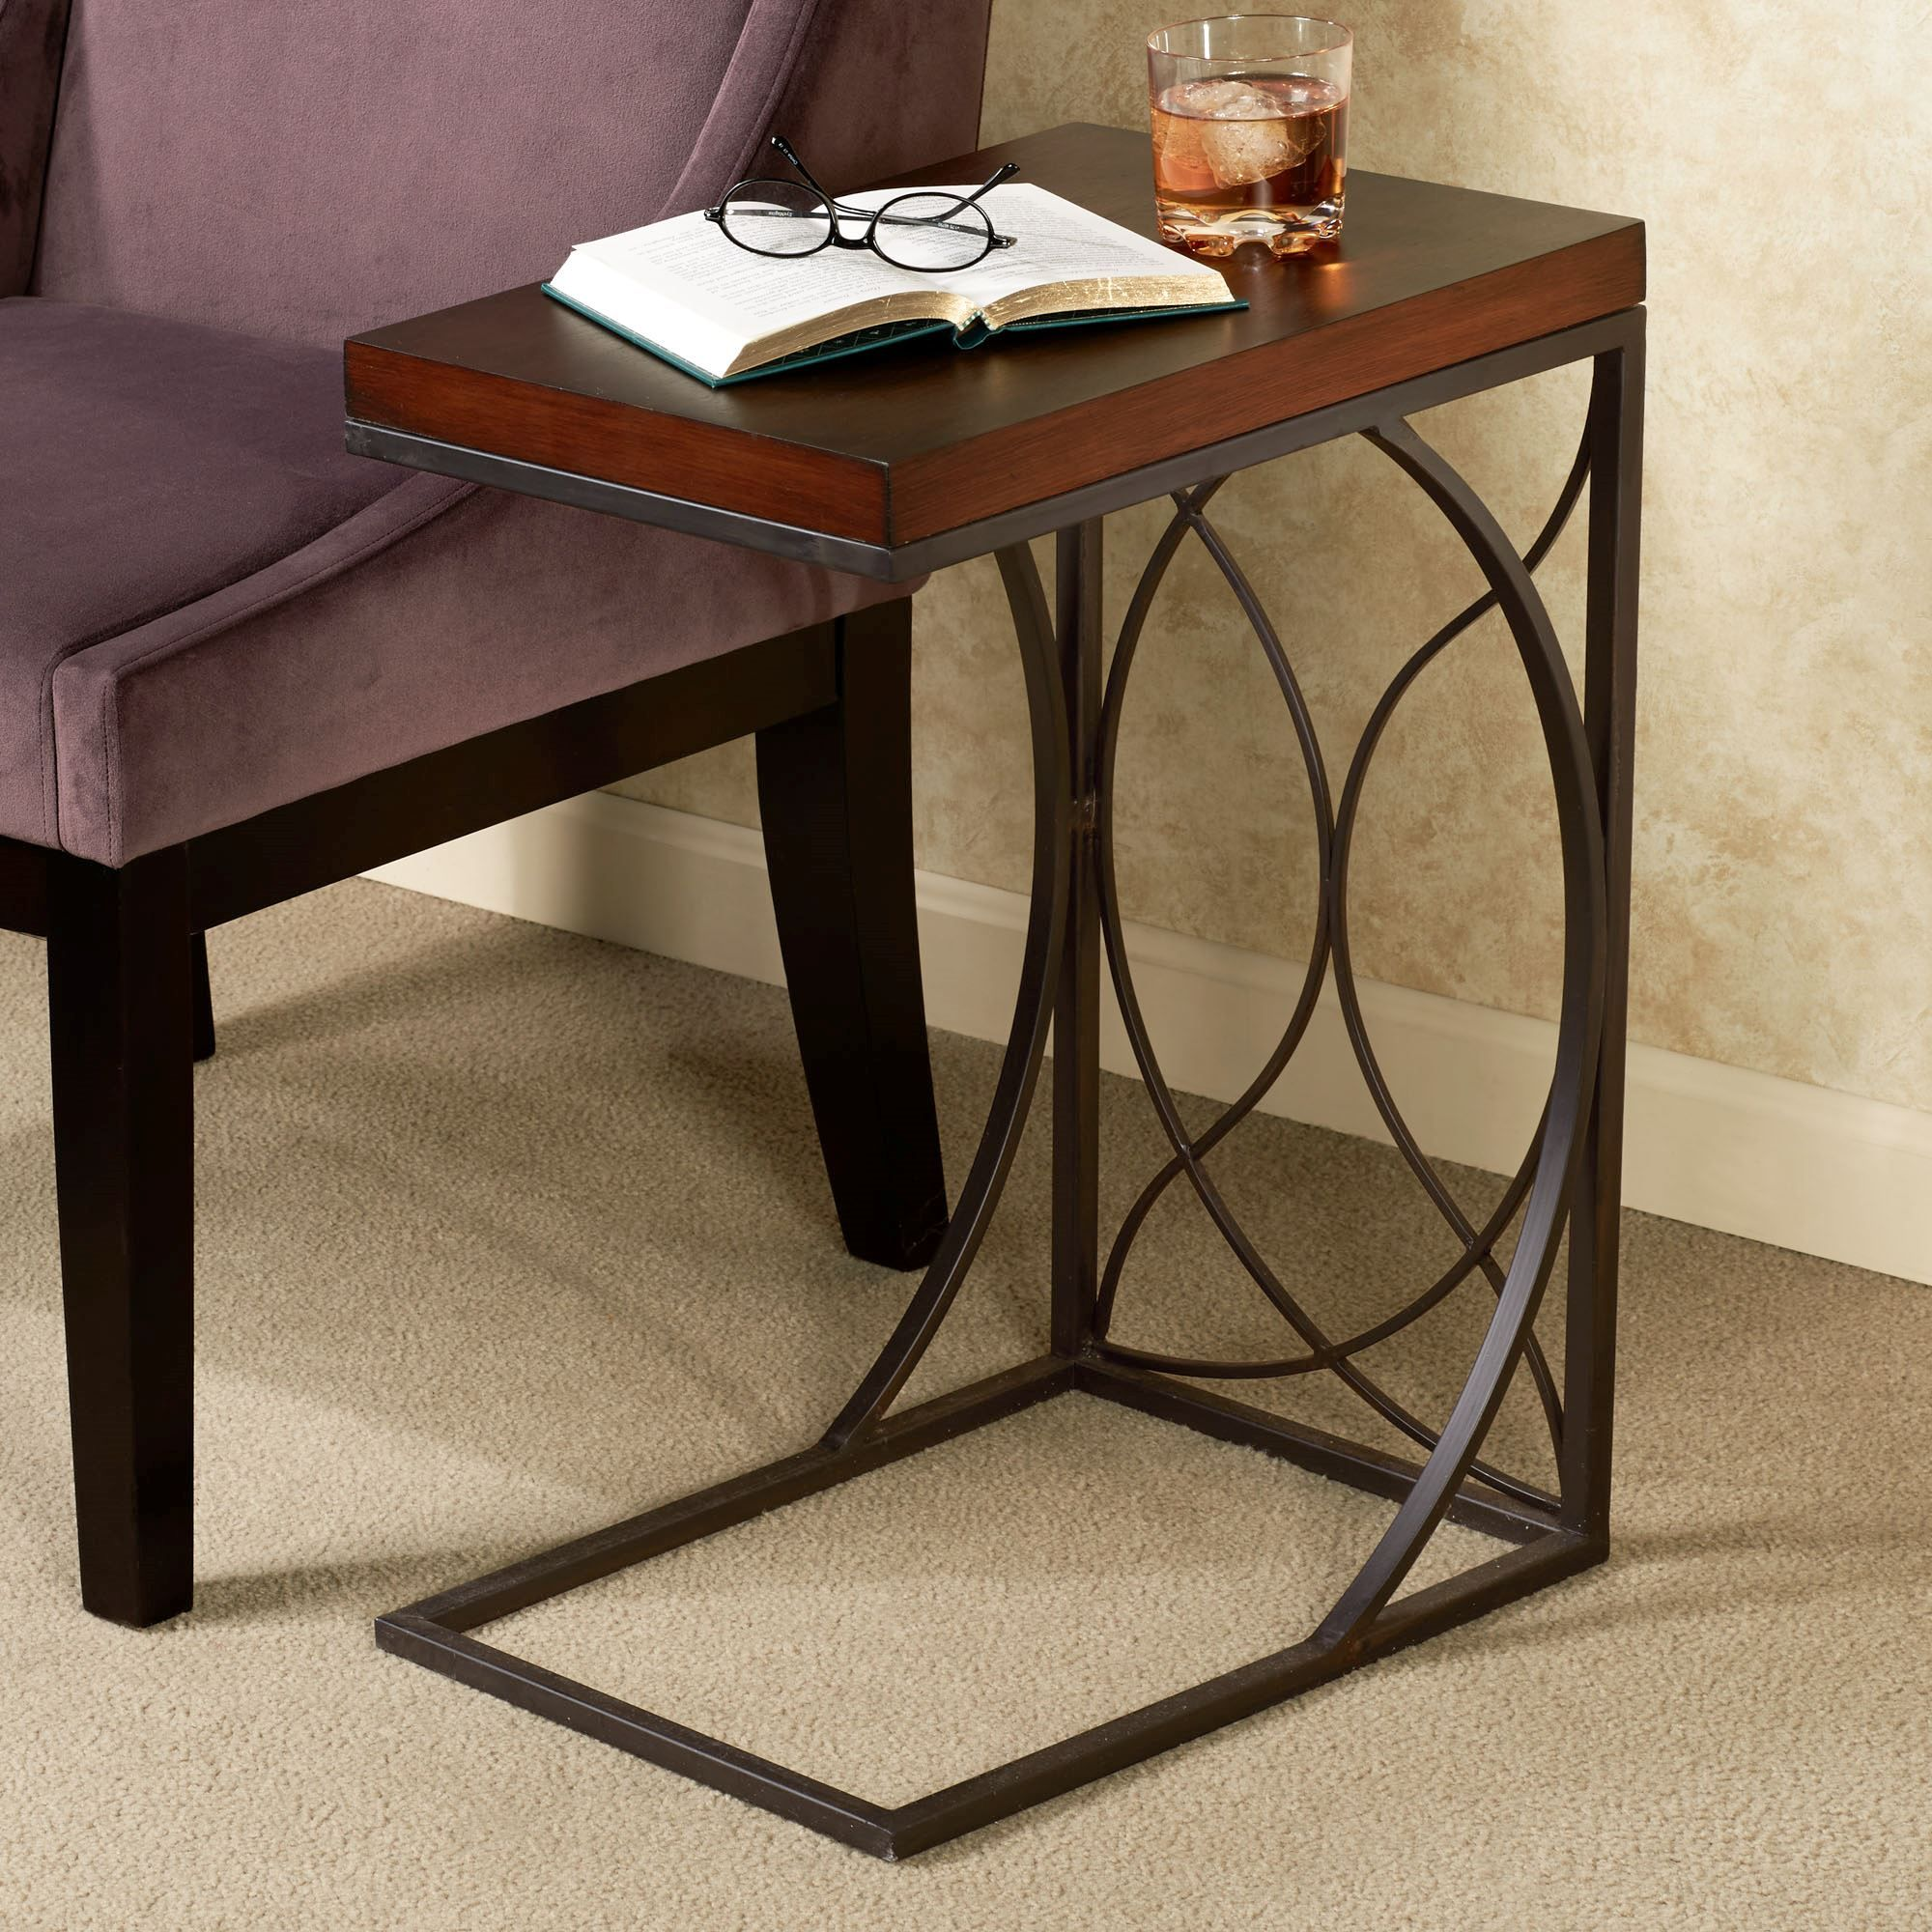 Rustic Bronze Polished Iron C Shape Based Sofa Side Table With Rectangle  Brown Stained Teak Wood Eased Top On Light Brown Pile Carpet As Well As  Ceramic ...